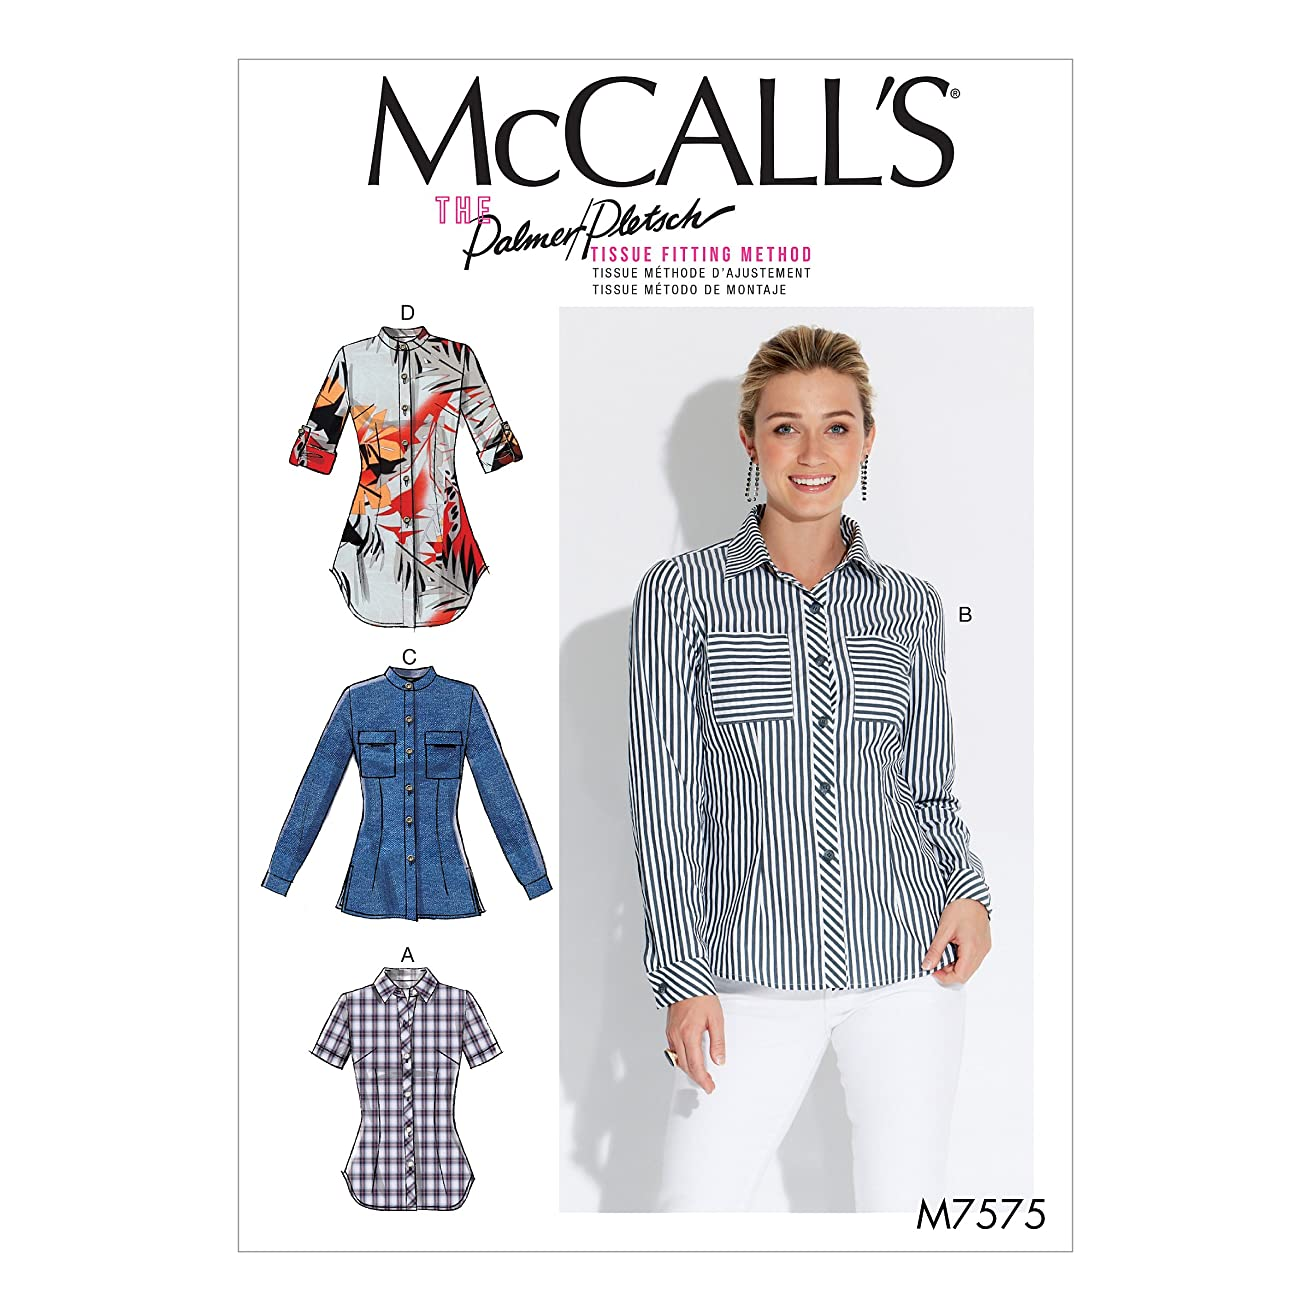 McCall's Patterns M7575F50 Misses' Button-Down Shirts with Collar, Sleeve and Pocket Variations Sewing Pattern, F5 (16-18-20-22-24)